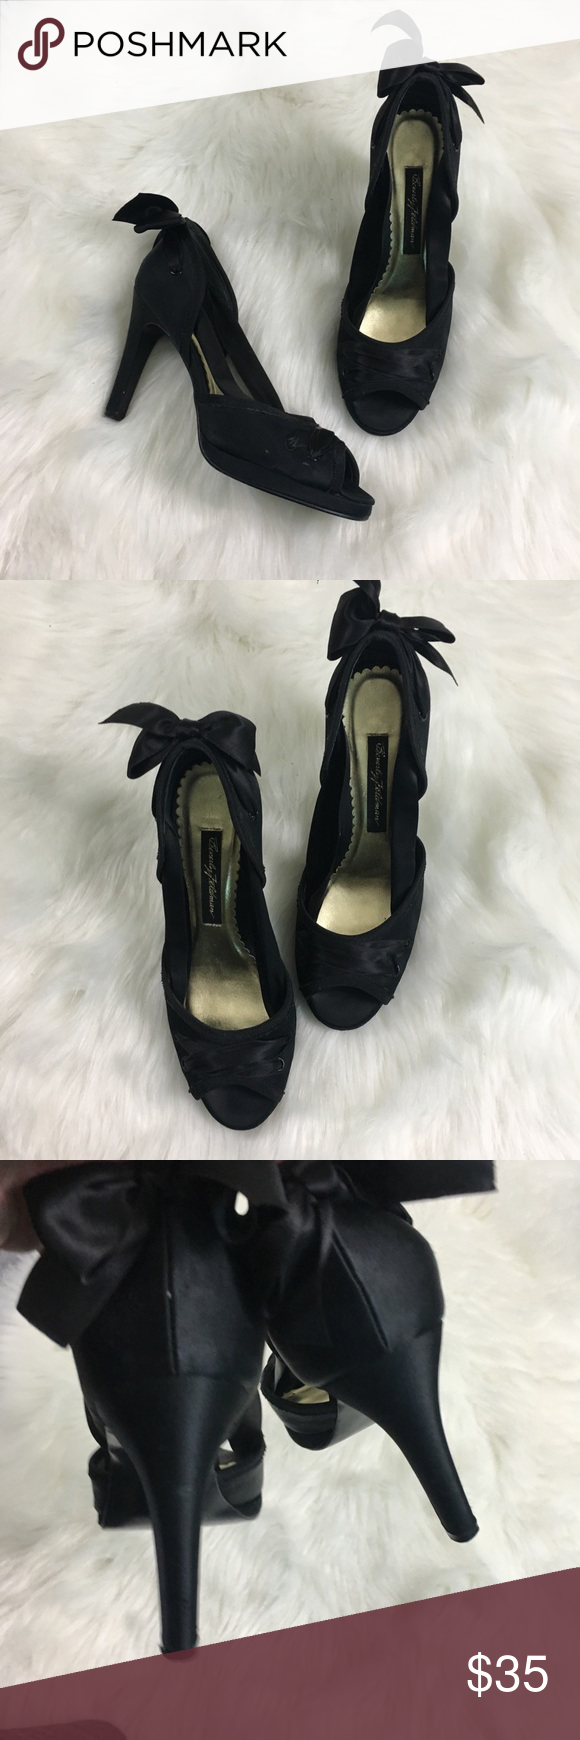 7ff8d43c0b9 Beverly Feldman Black Statin Peep Toe Pumps 6 So festive and perfect for  the holidays.